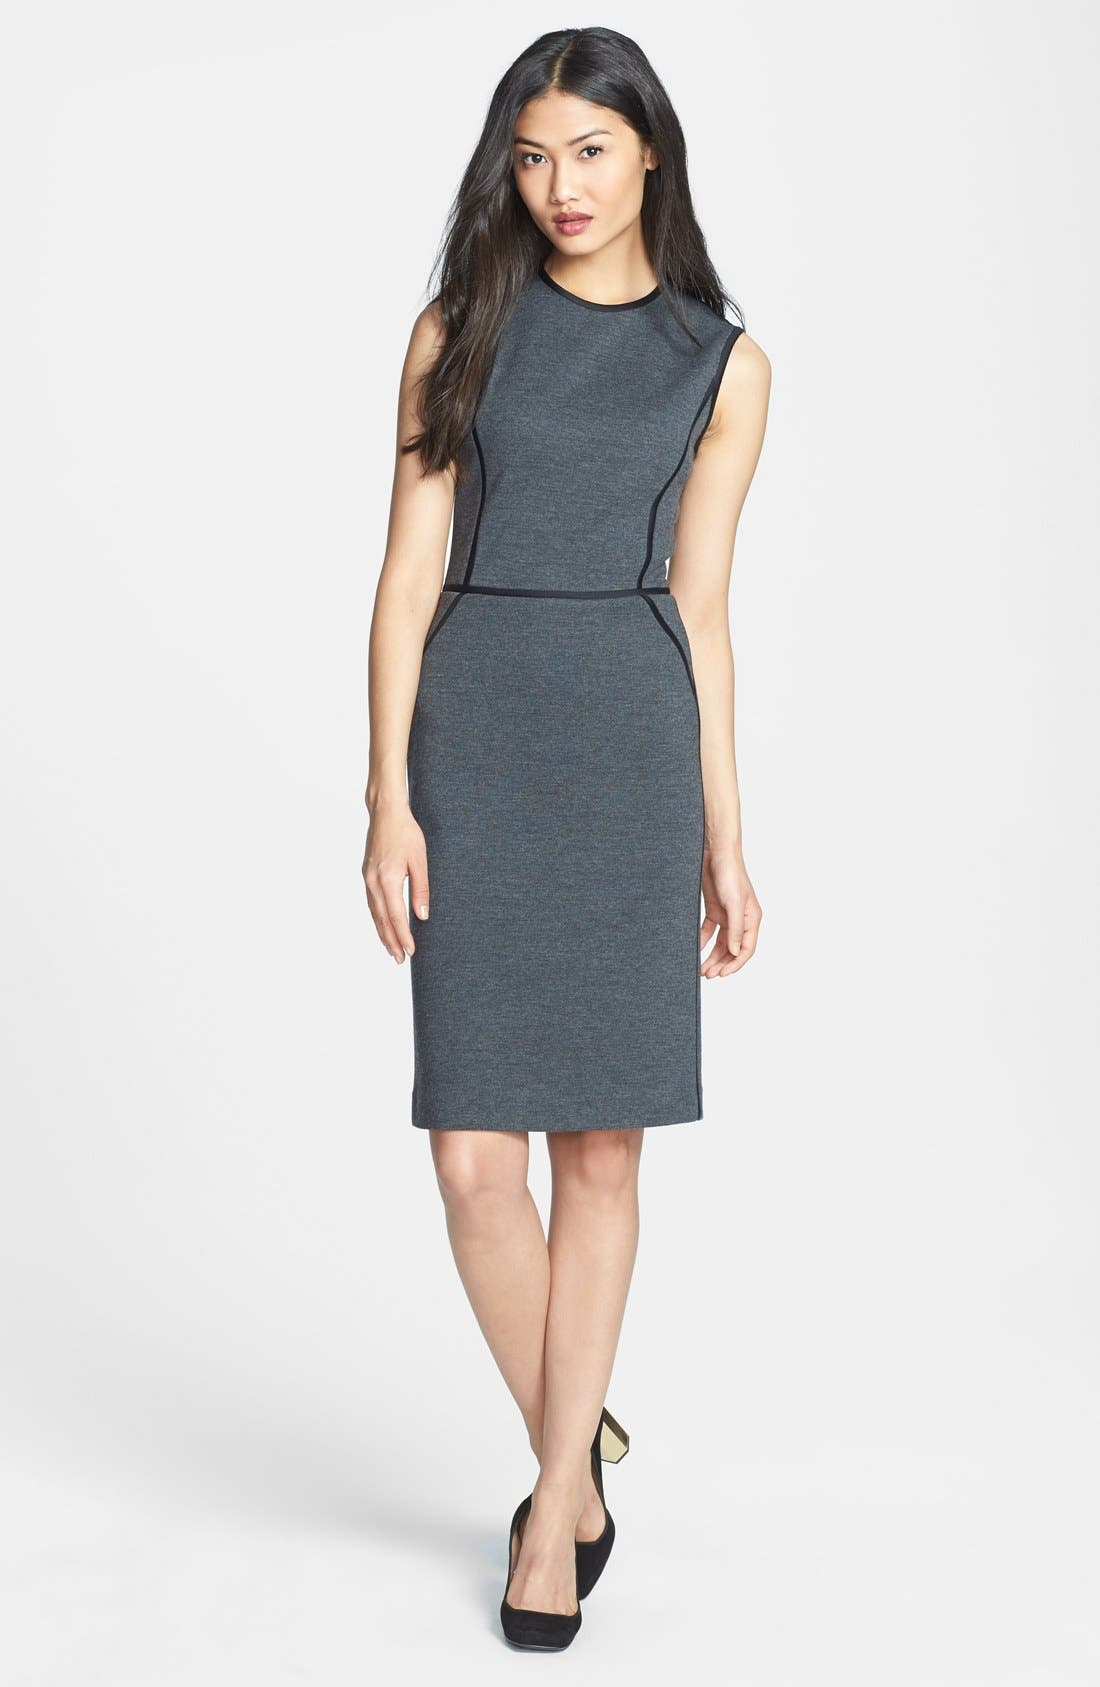 Alternate Image 1 Selected - Tory Burch 'Marcia' Knit Sheath Dress